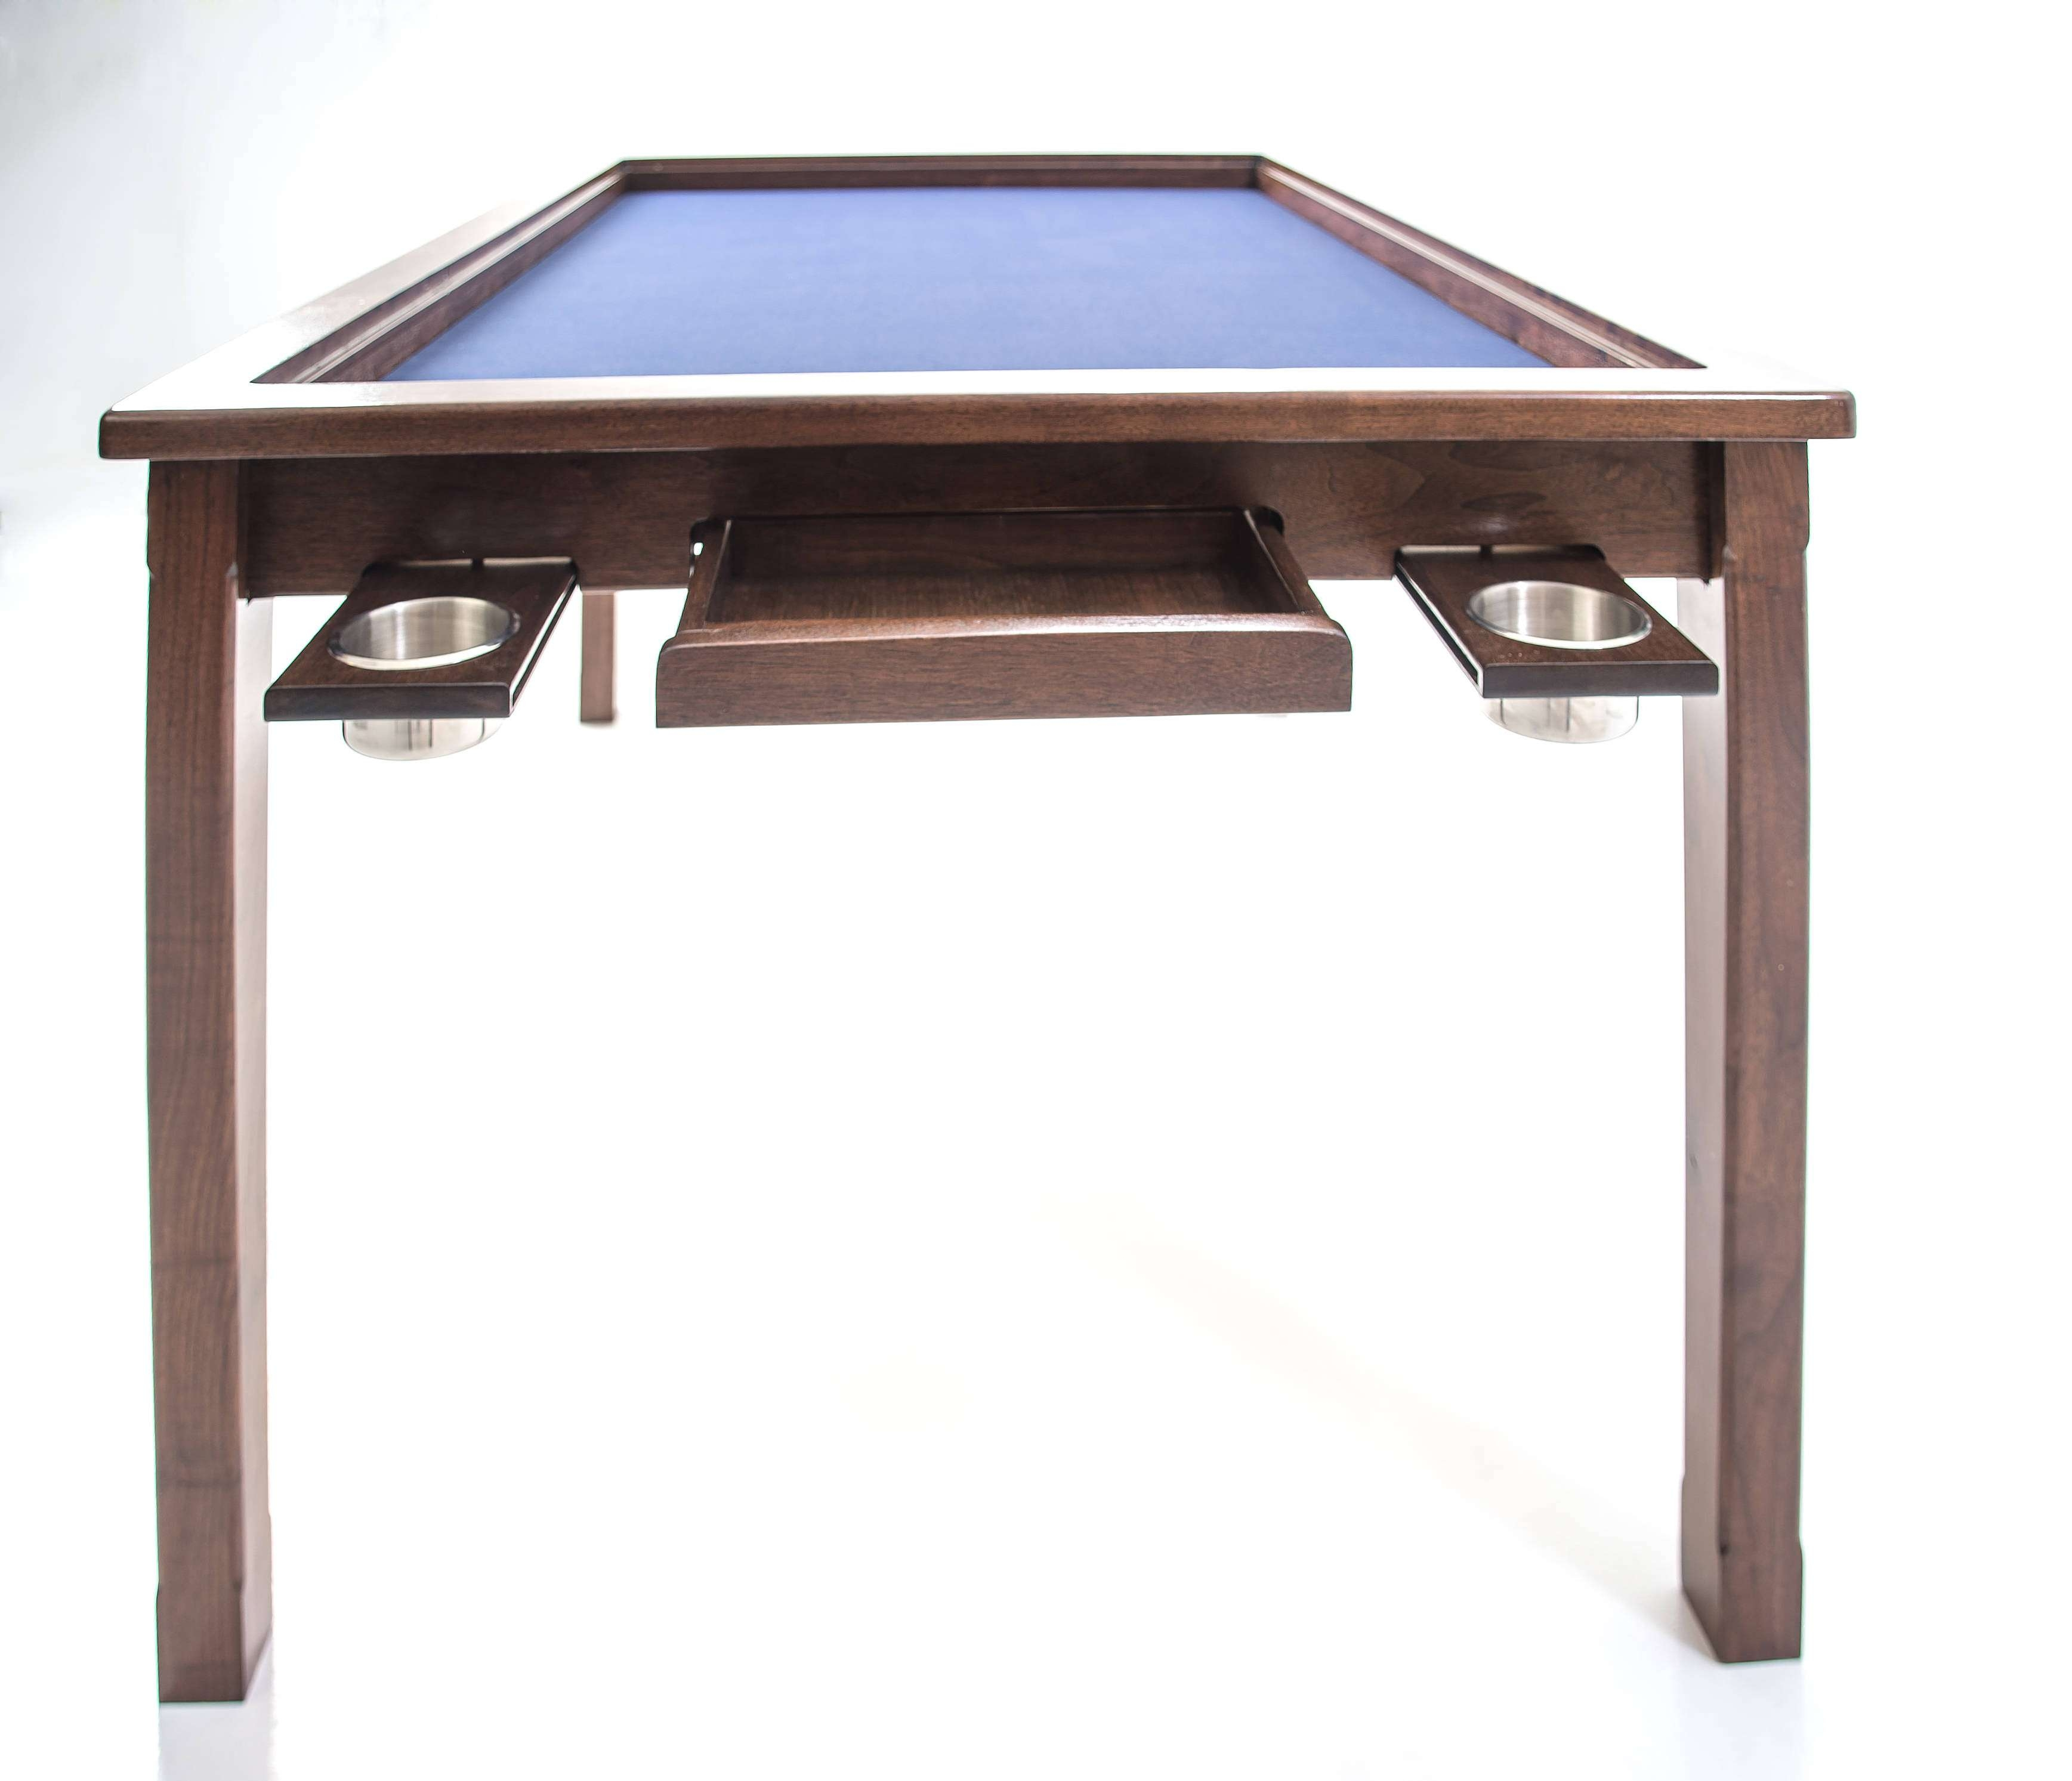 2017 Retro Oak Coffee Tables Within Coffee Table : Magnificent Oak Coffee Table Retro Coffee Table (View 12 of 20)